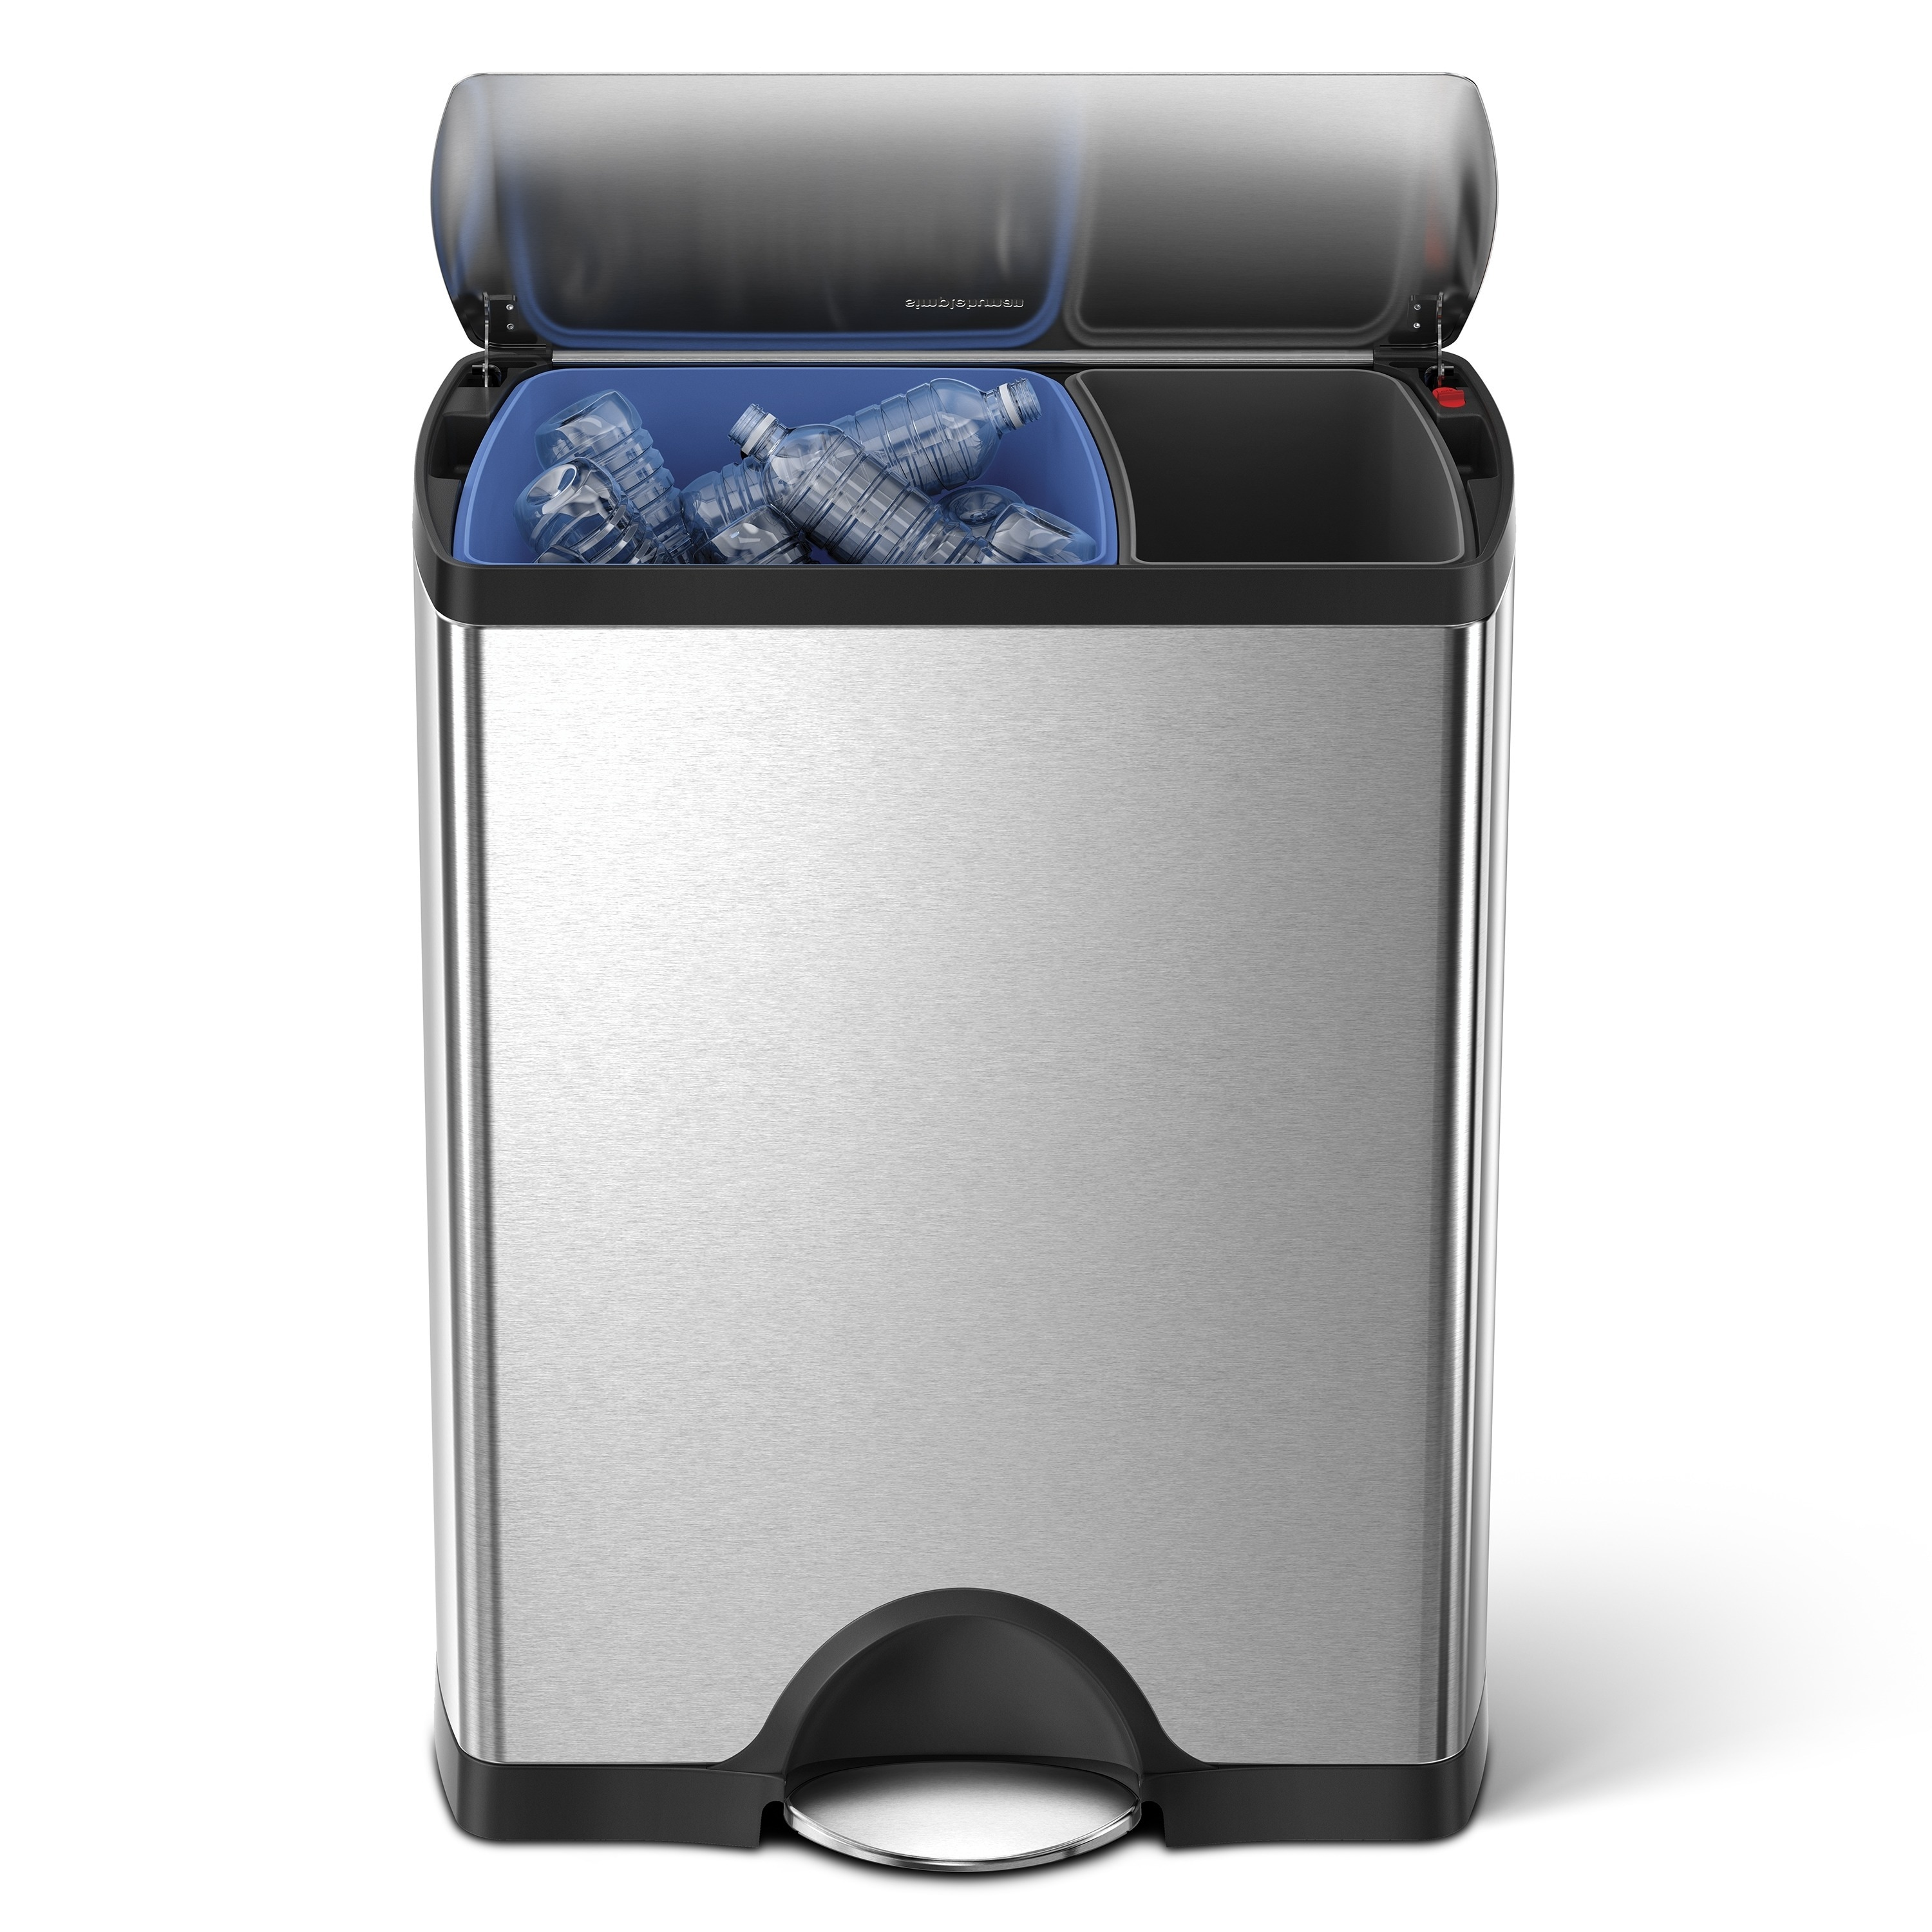 Image Result For Trash Can Recycle Bin Combo Amazon